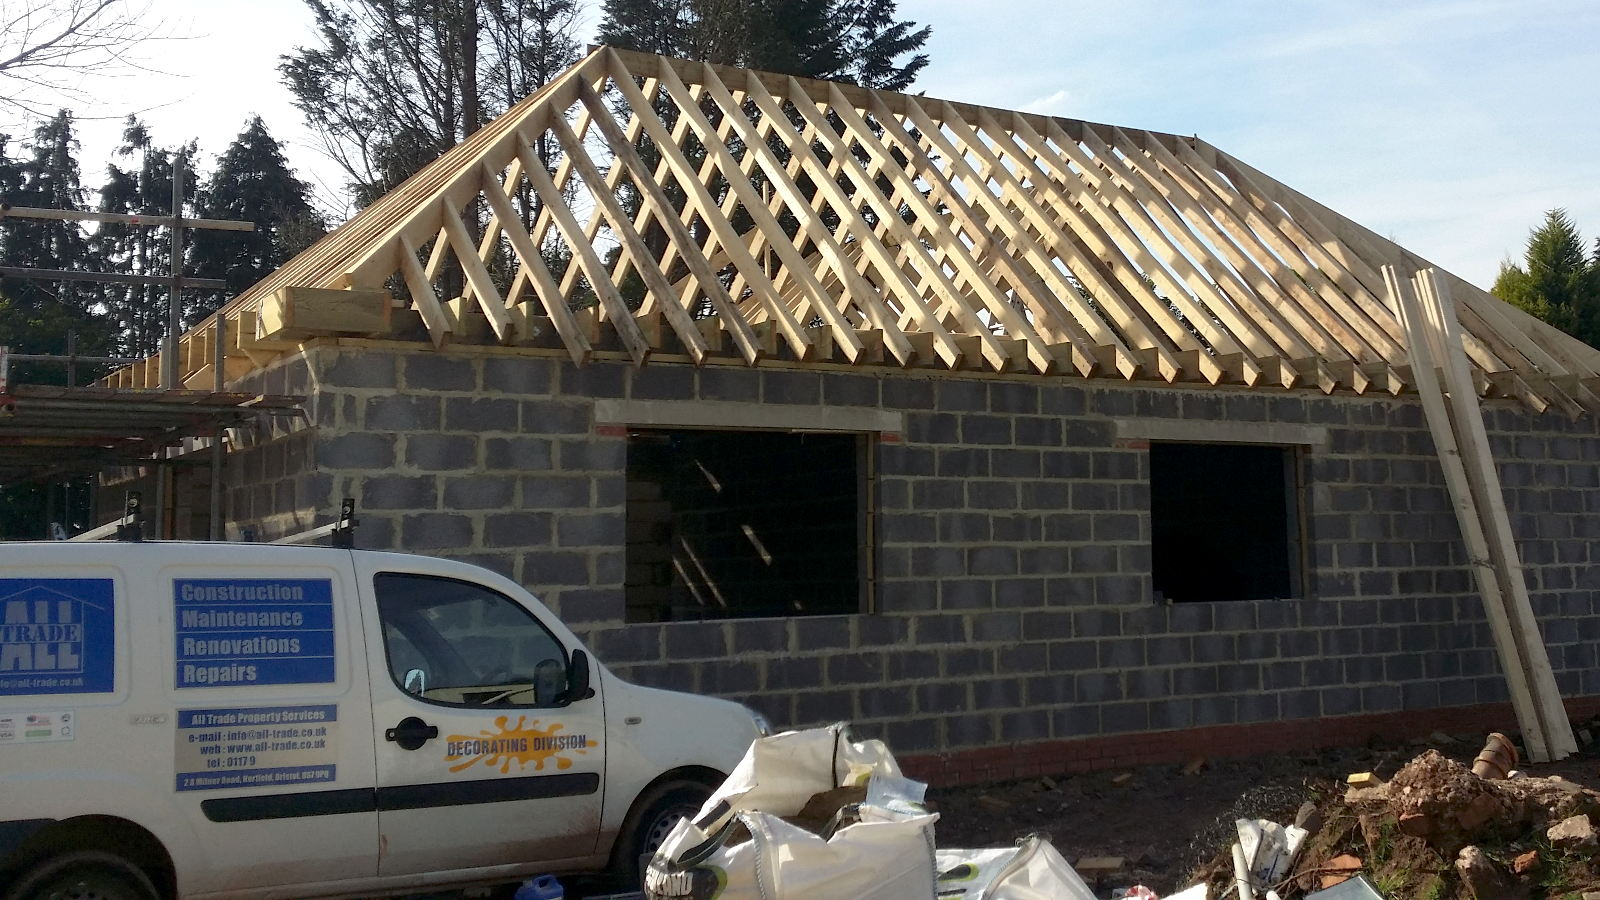 Carpentry by All Trade Property